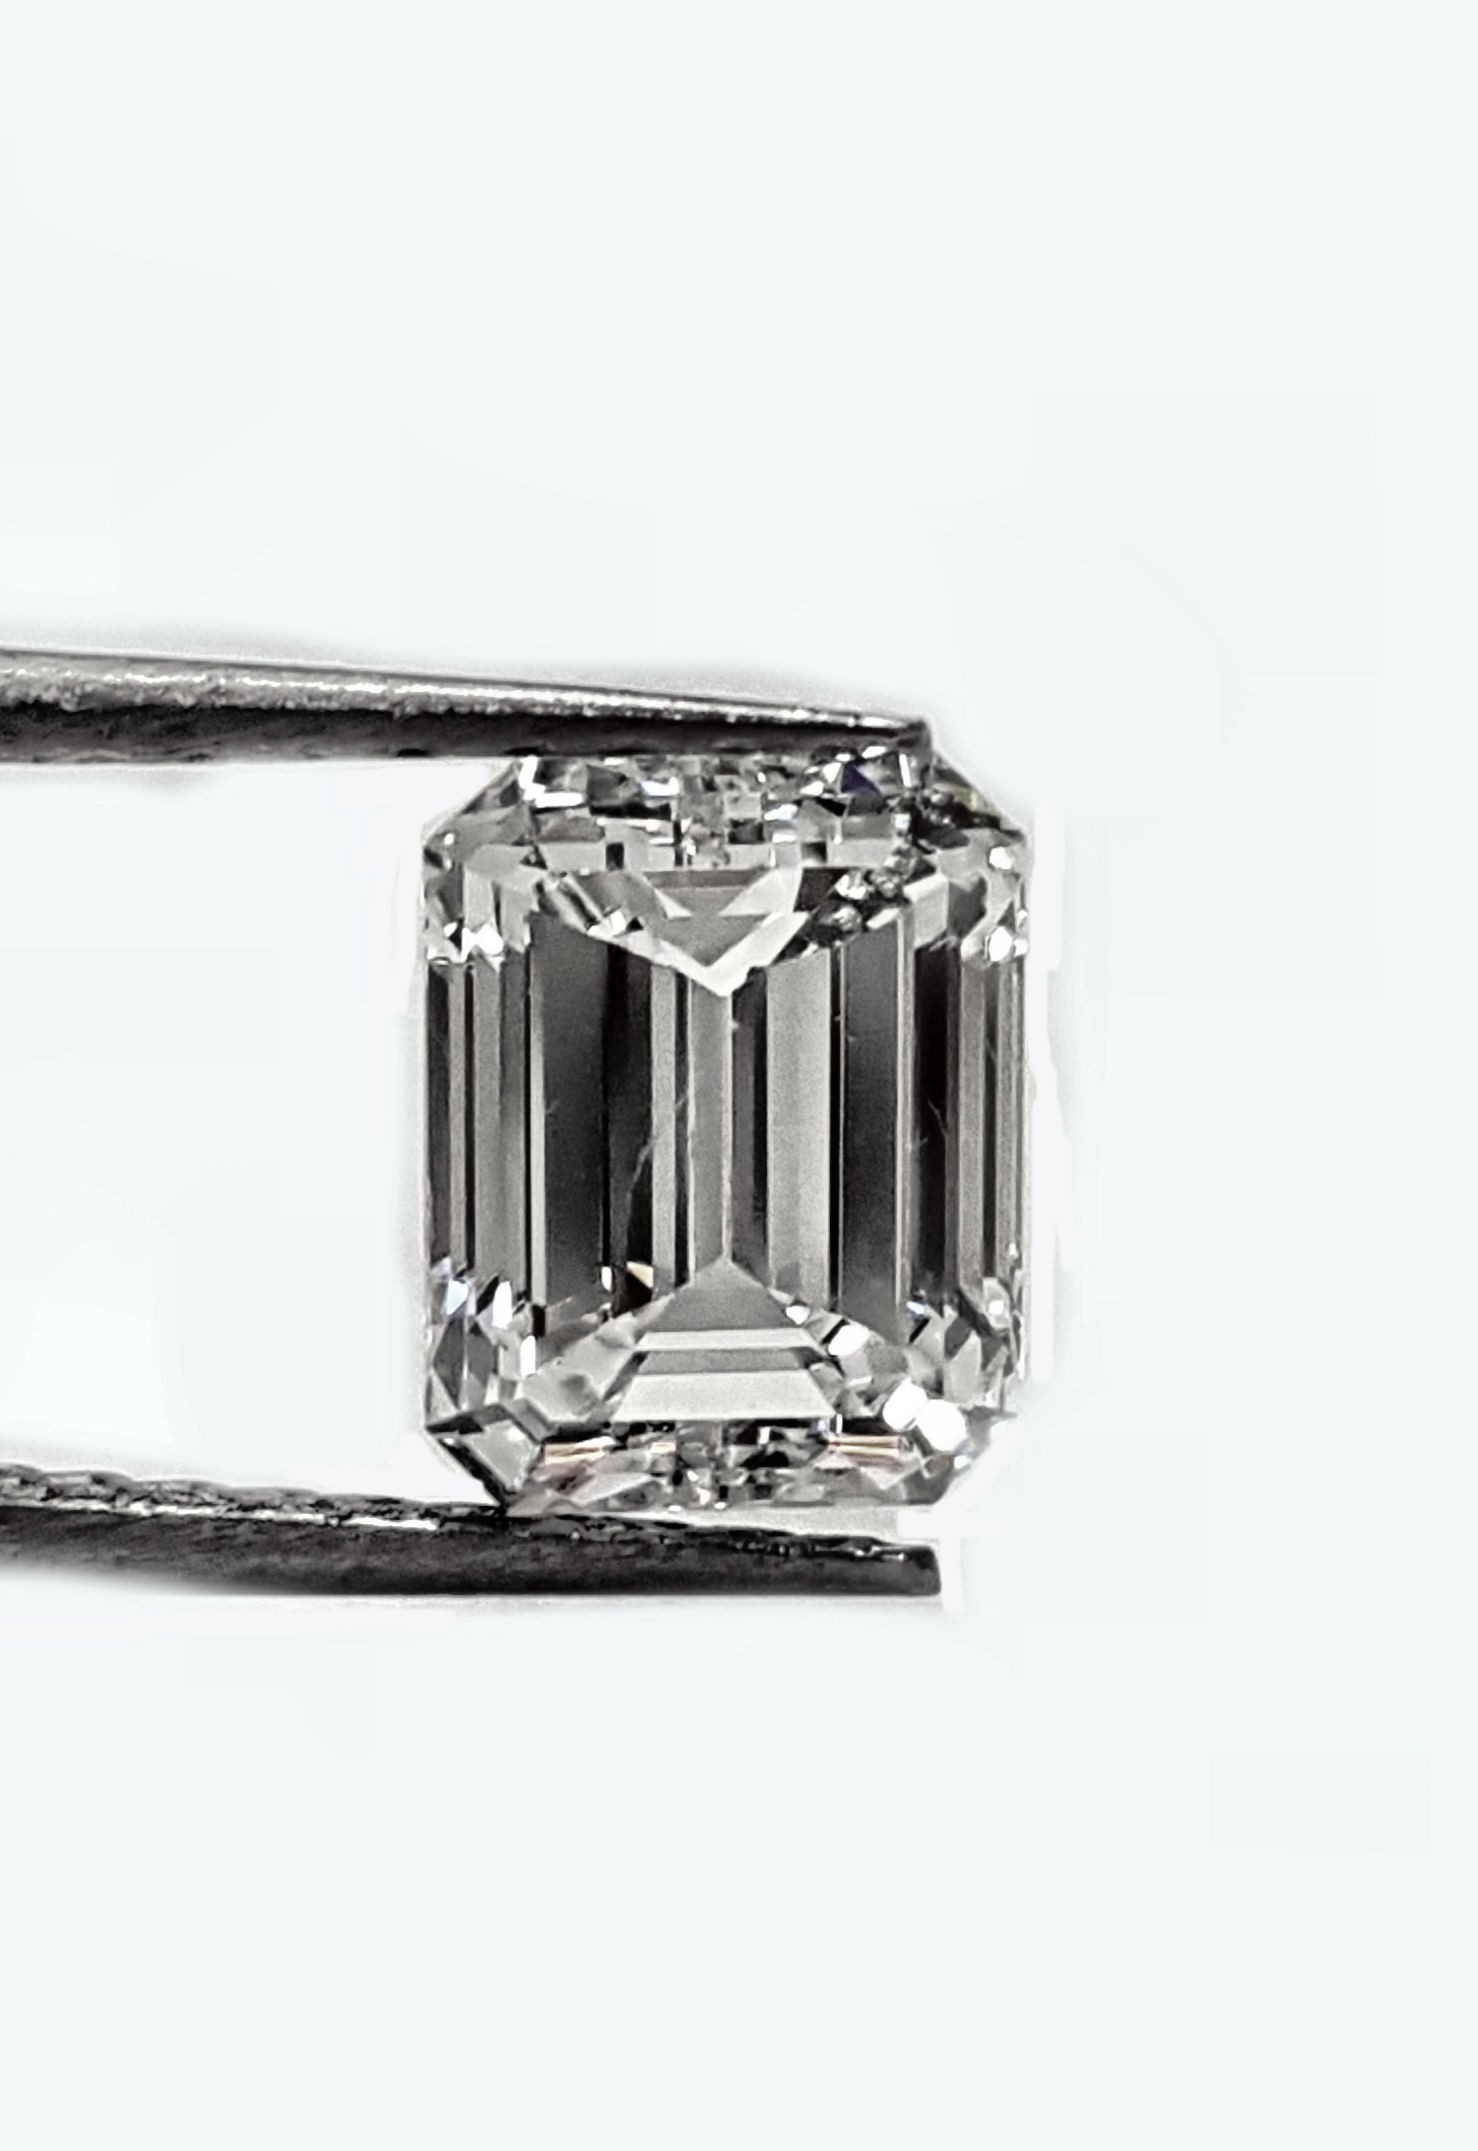 91pt. Emerald cut 91pts. H SI1 GIA certified